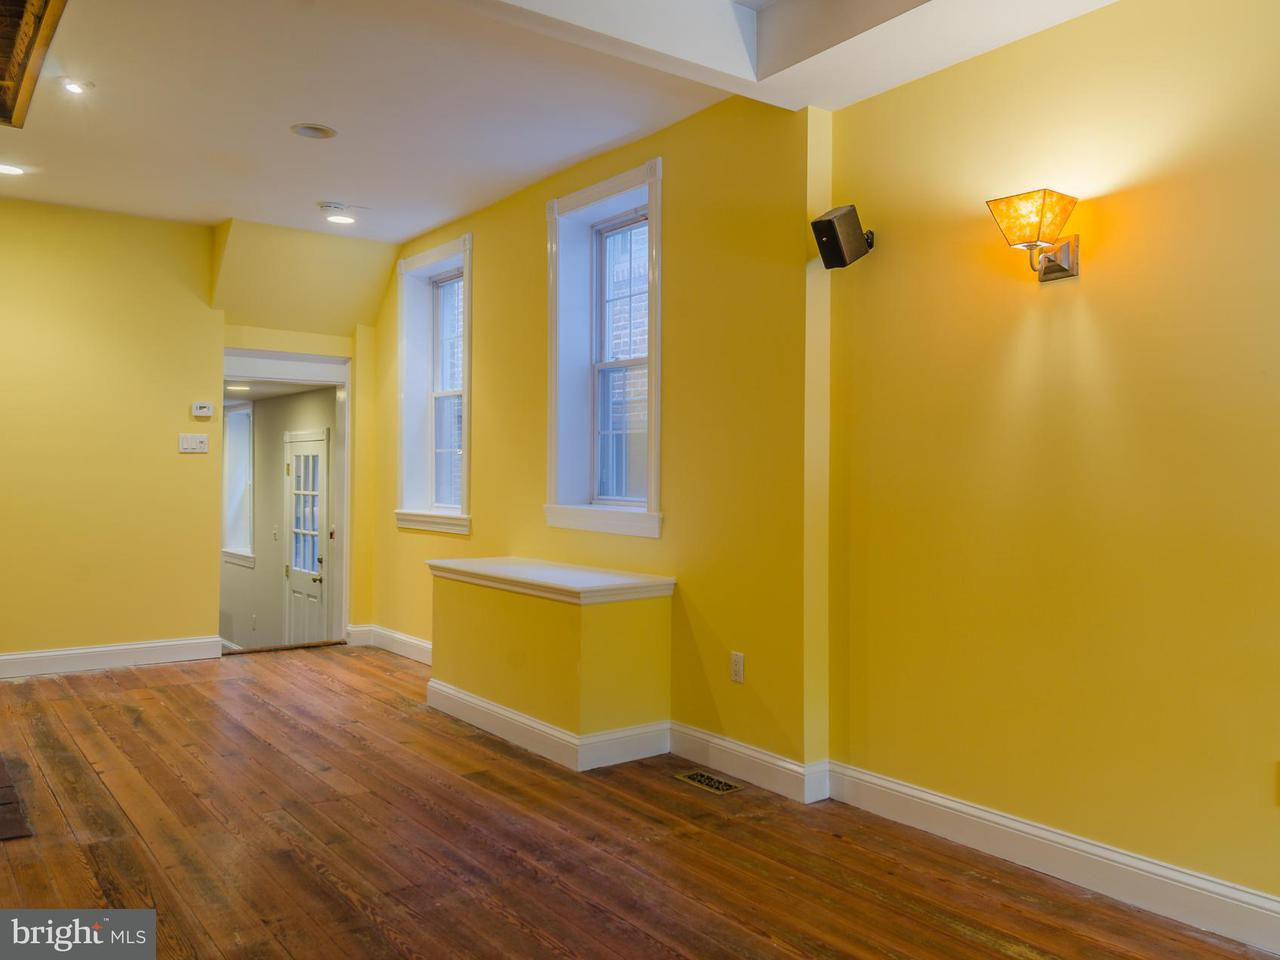 Other Residential for Rent at 320 Wolfe St Baltimore, Maryland 21231 United States